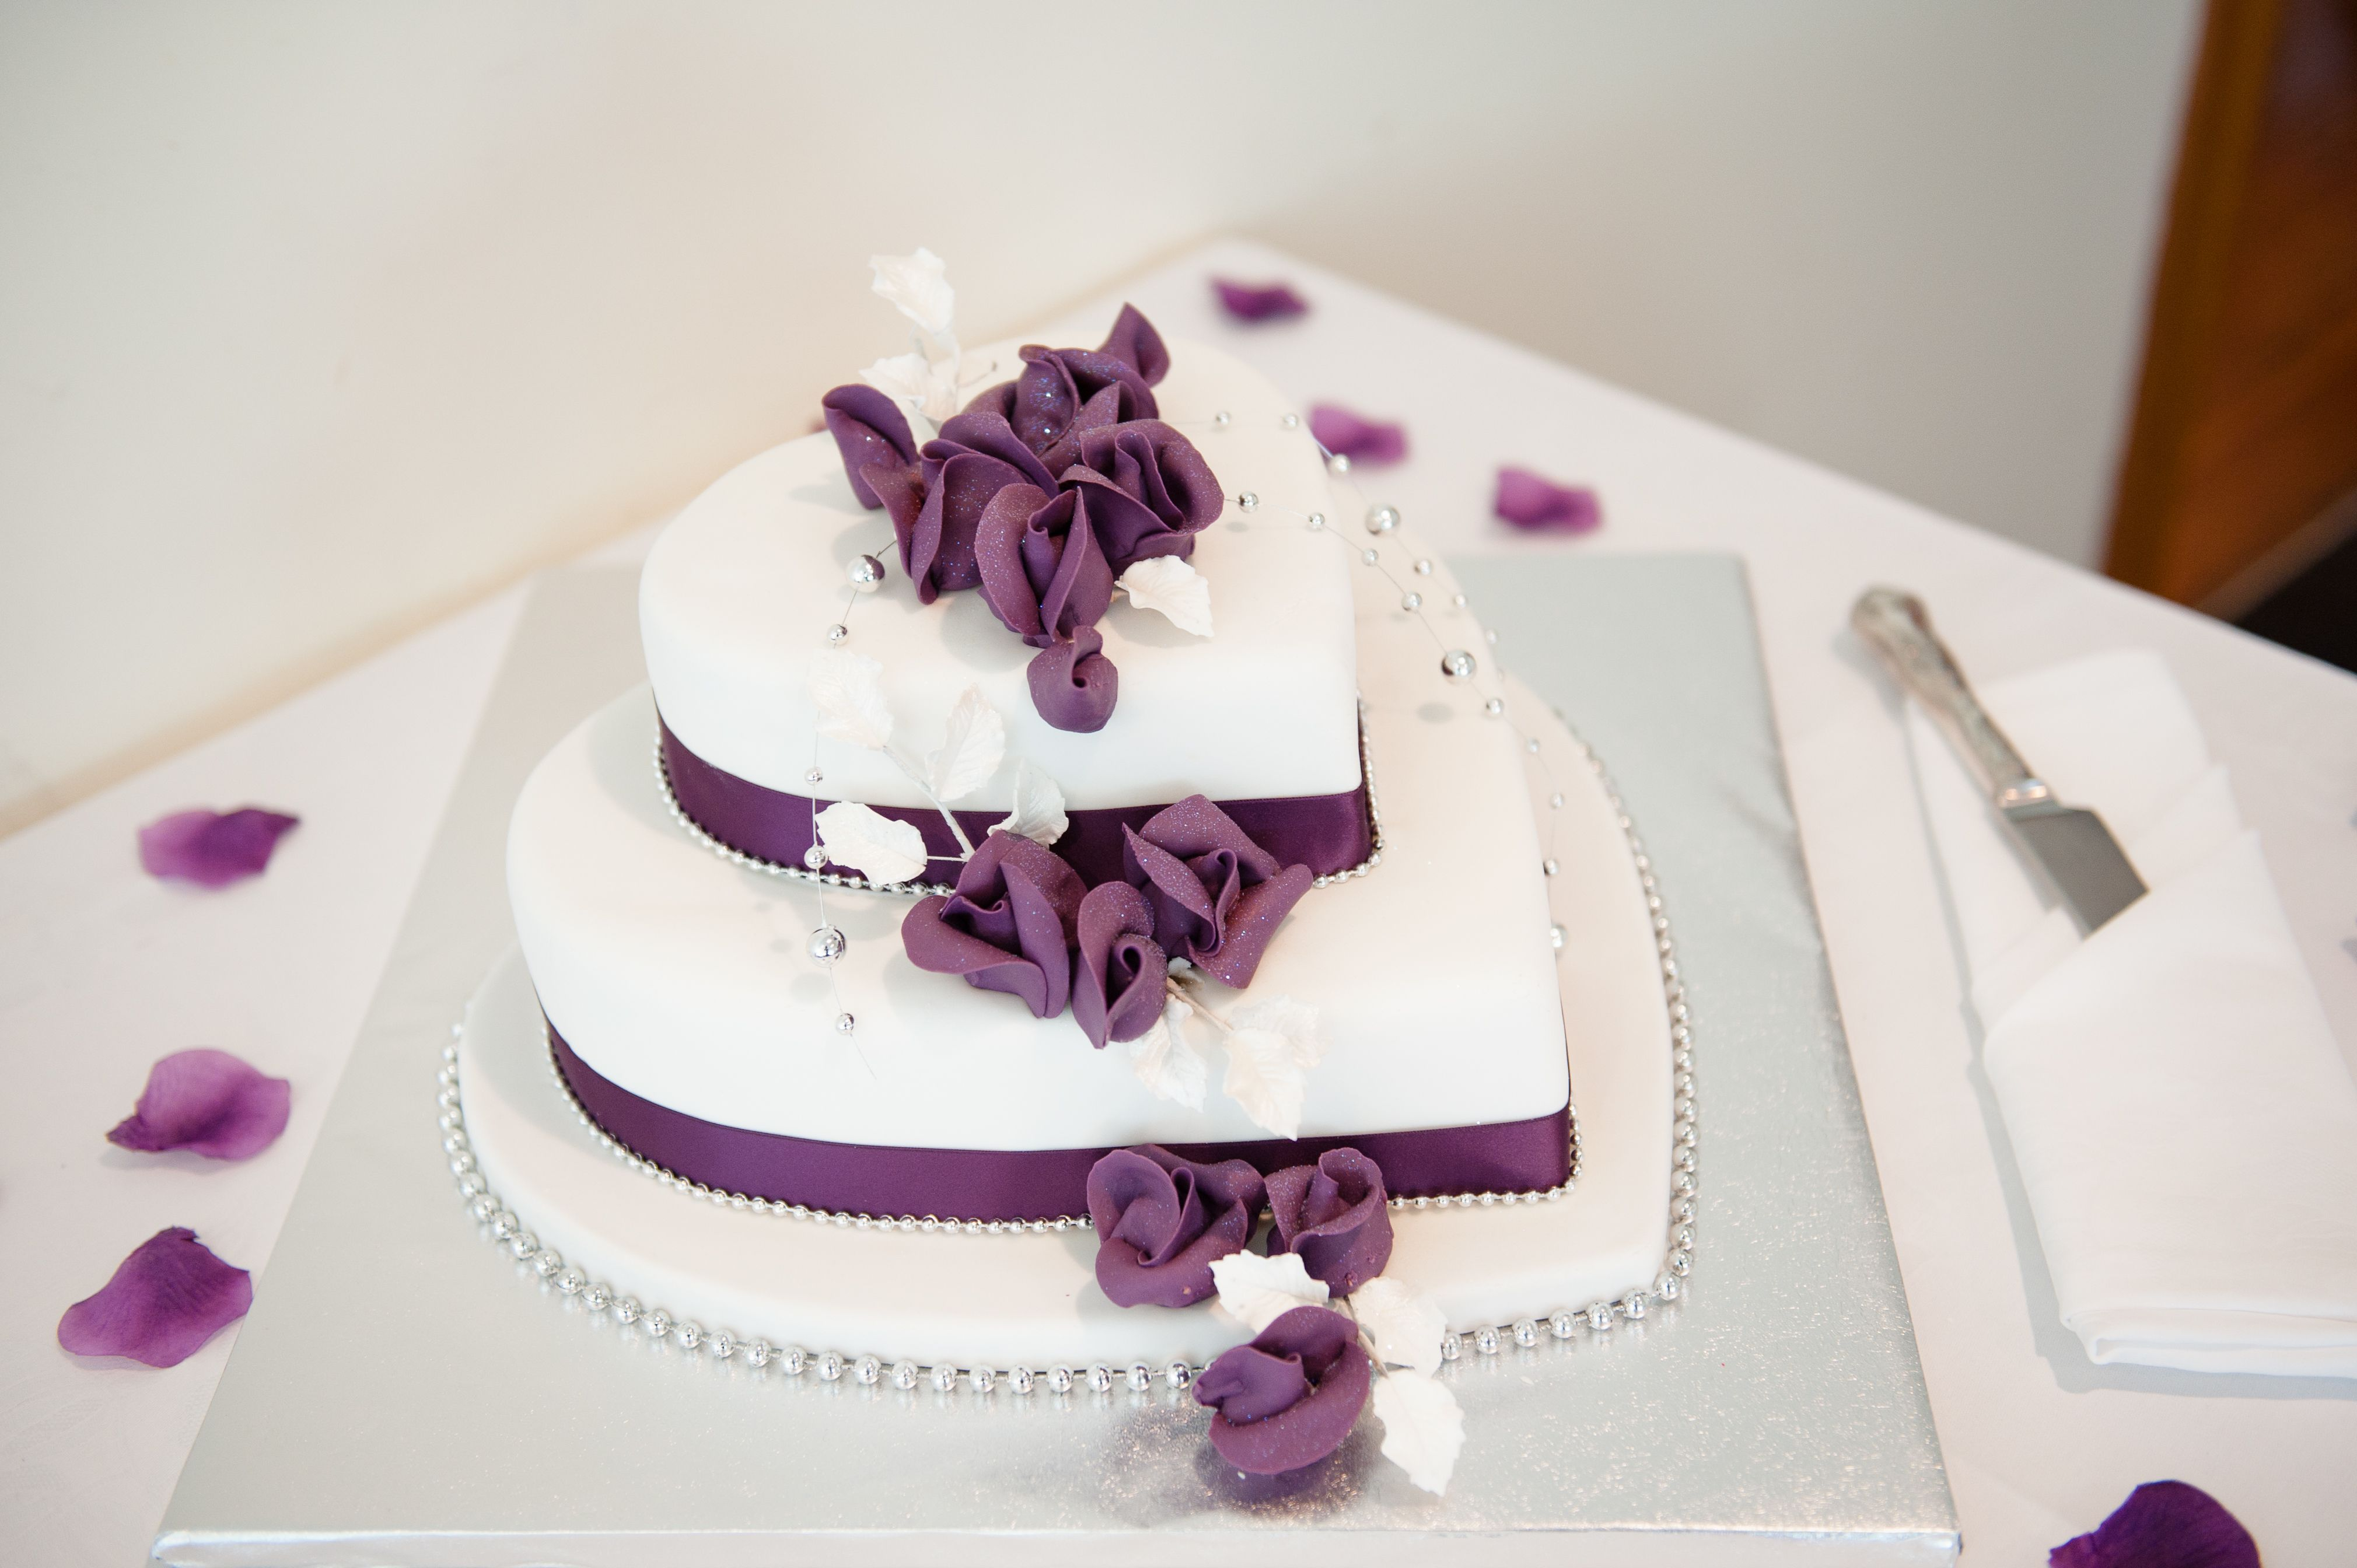 Pin by fresco foods cakes on OUR CUSTOMERS WHO MAKE ALL